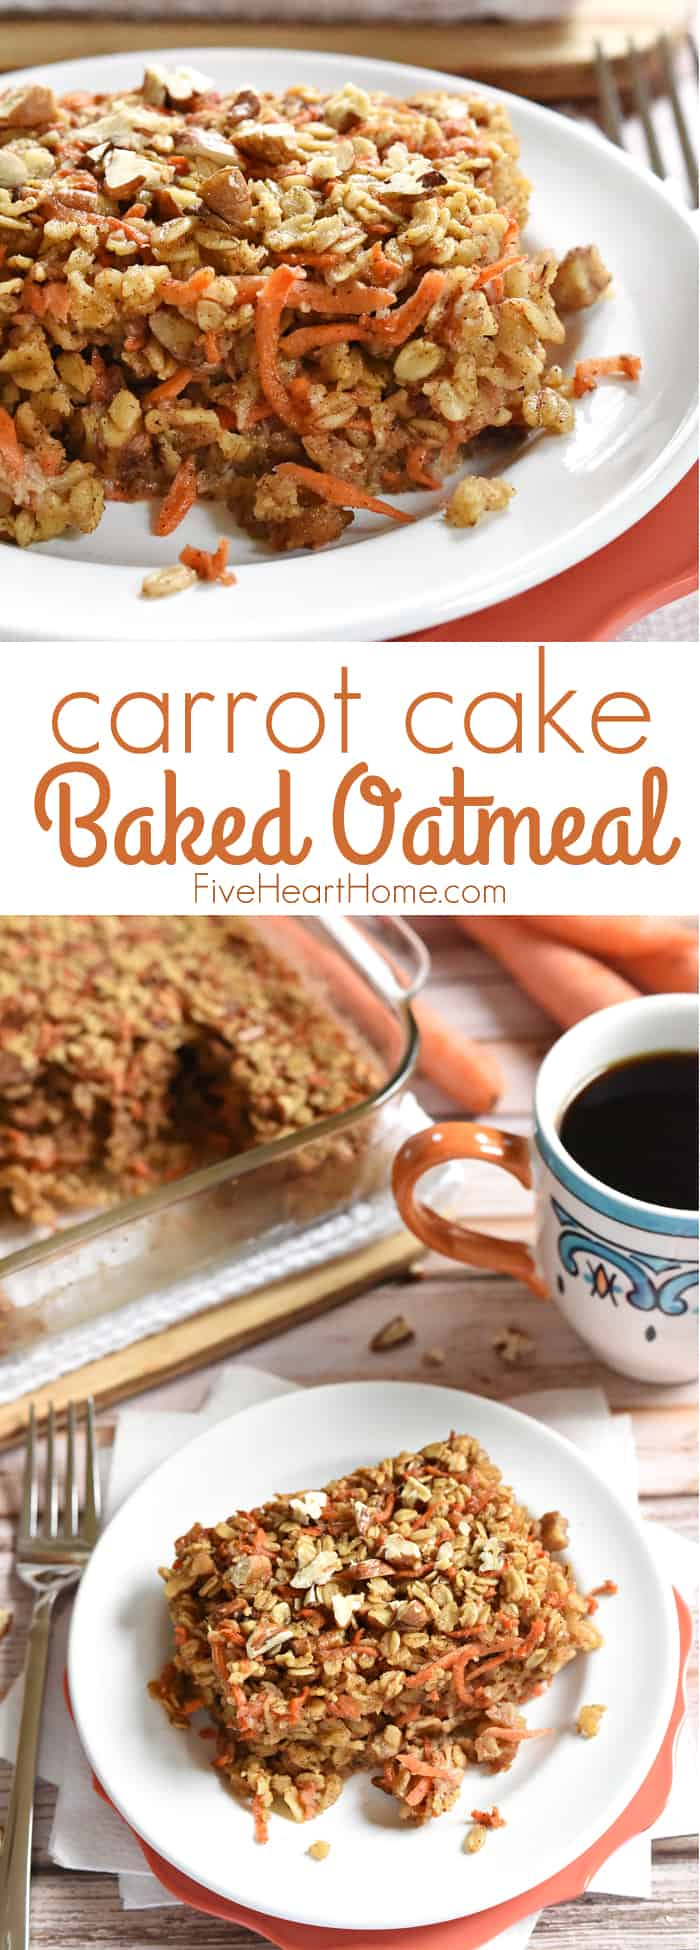 Carrot Cake Baked Oatmeal ~ a tasty, wholesome breakfast recipe featuring rolled oats, grated carrots, coconut oil, and maple syrup, with flavors of the classic dessert | FiveHeartHome.com